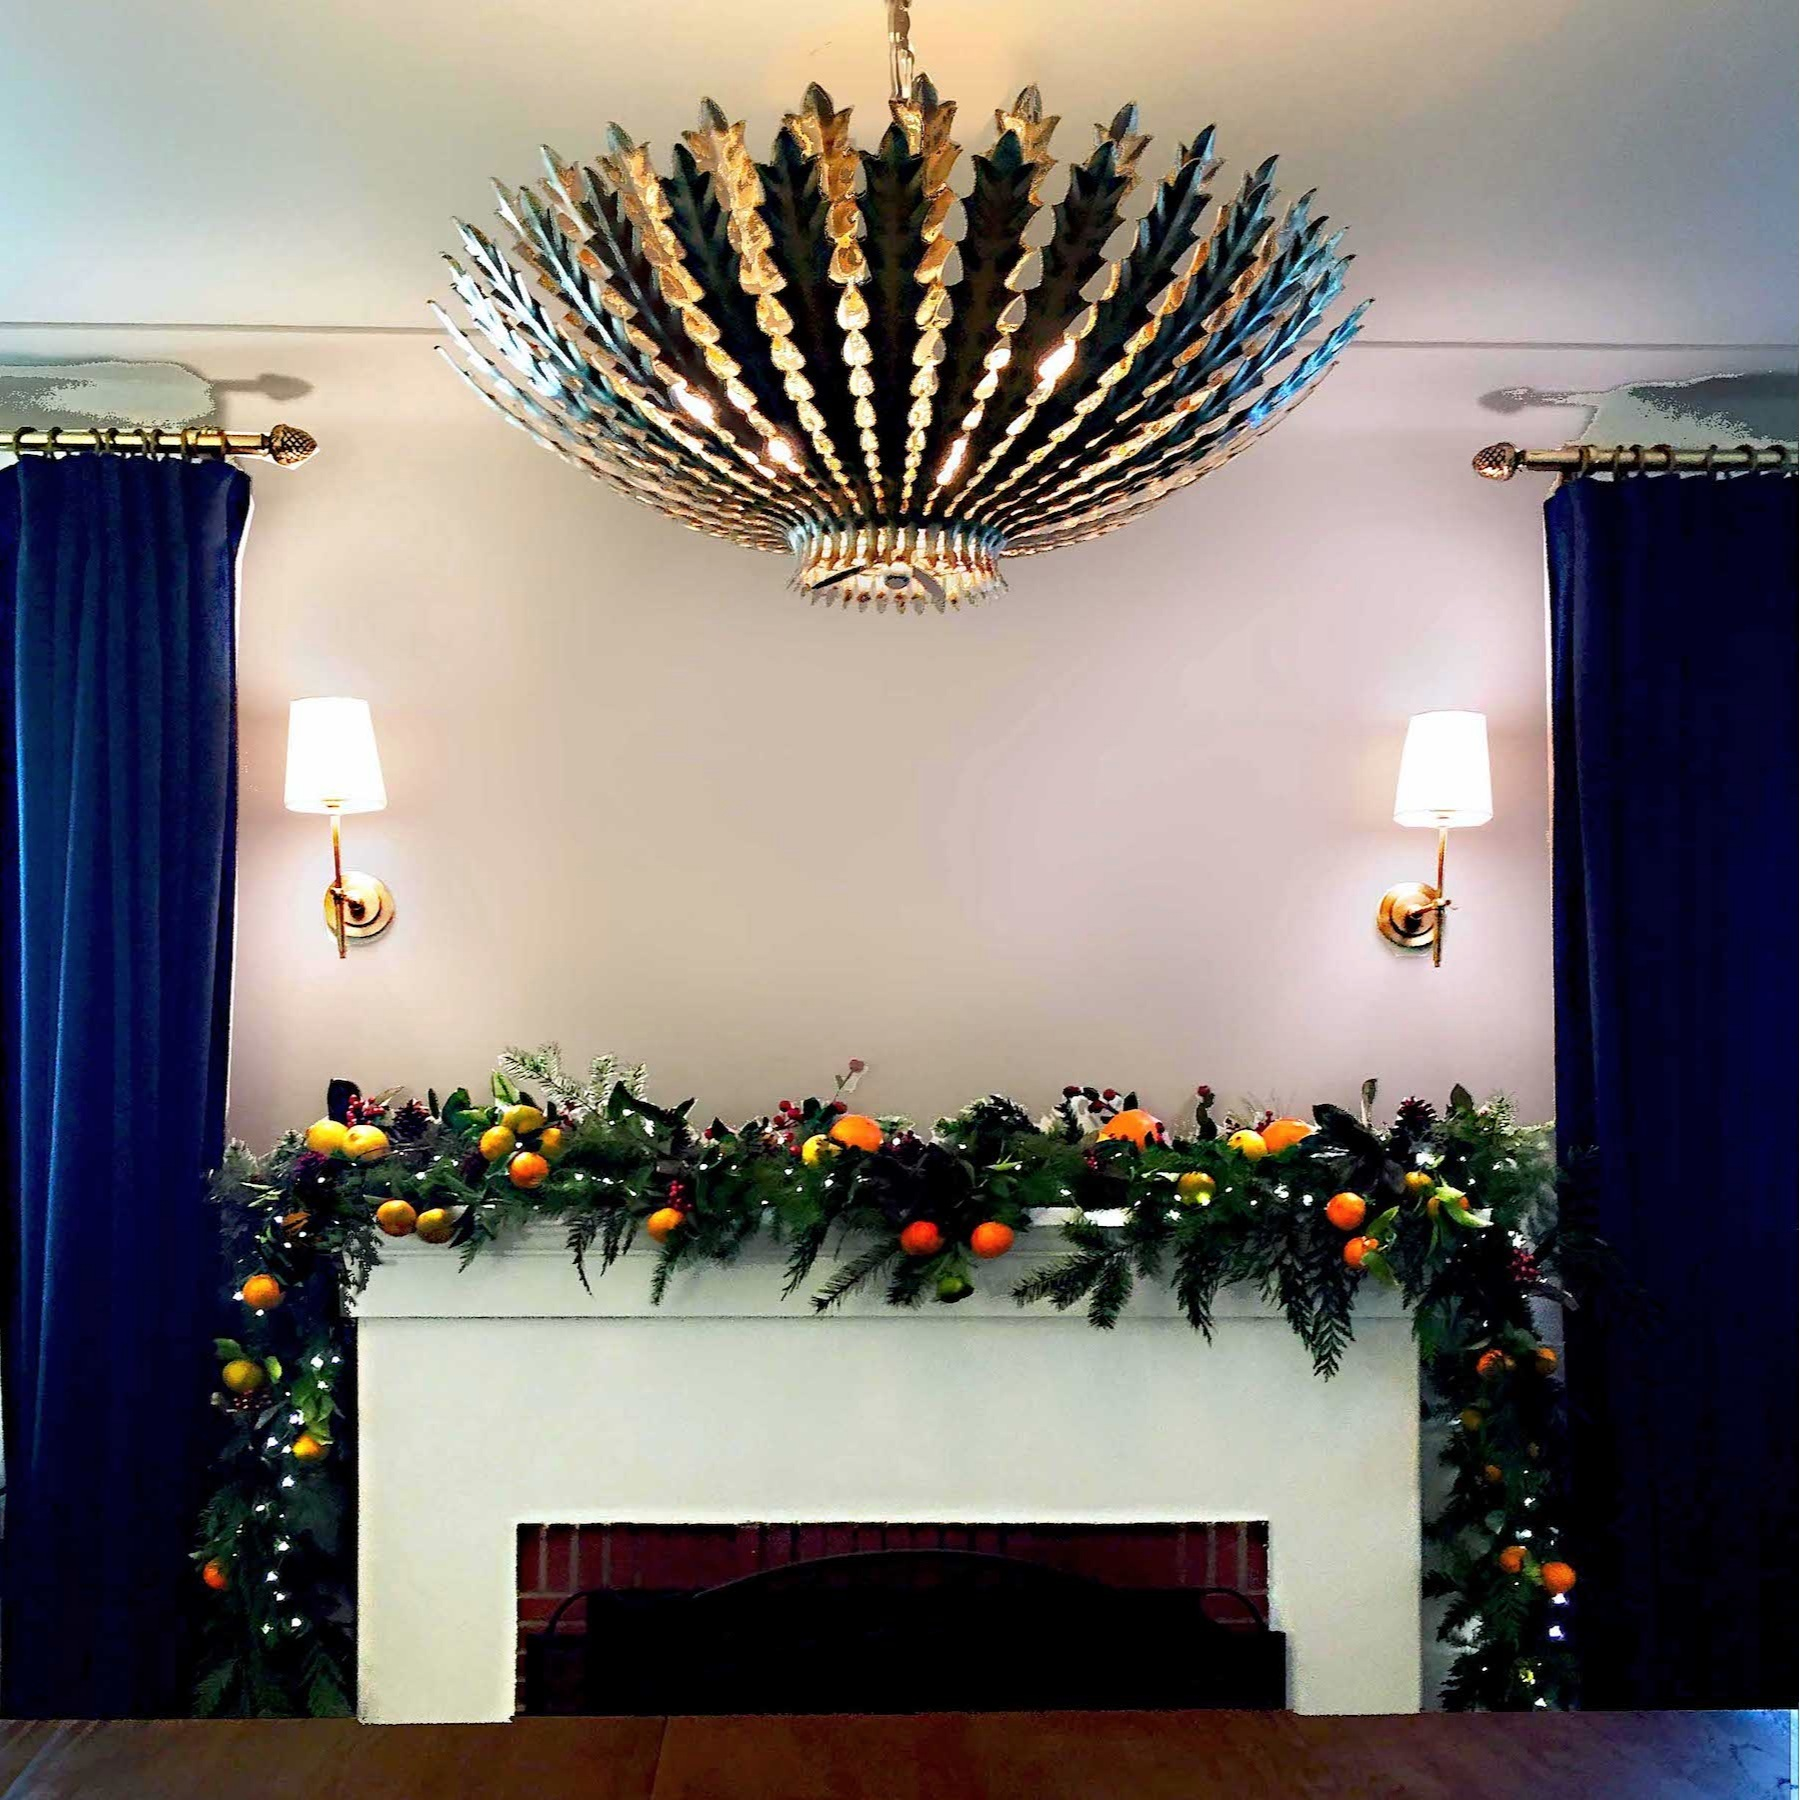 custom-decor for events & holiday decorating -